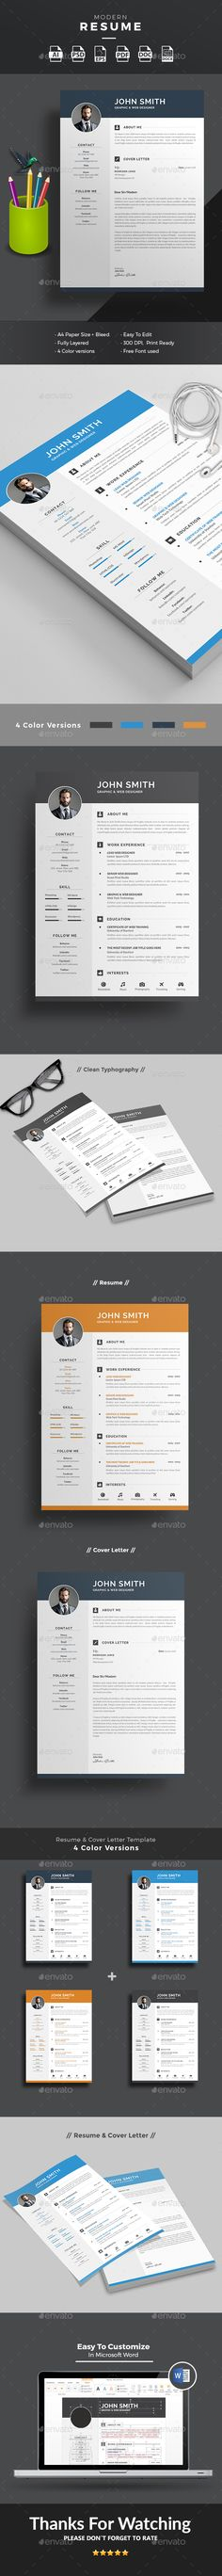 Search Resumes Free Pdf Resume  Creative Resume Professional Resume Examples And Cv Template Thank You For Reviewing My Resume Pdf with Updating A Resume Pdf Resume Entry Level Resume Objective Pdf